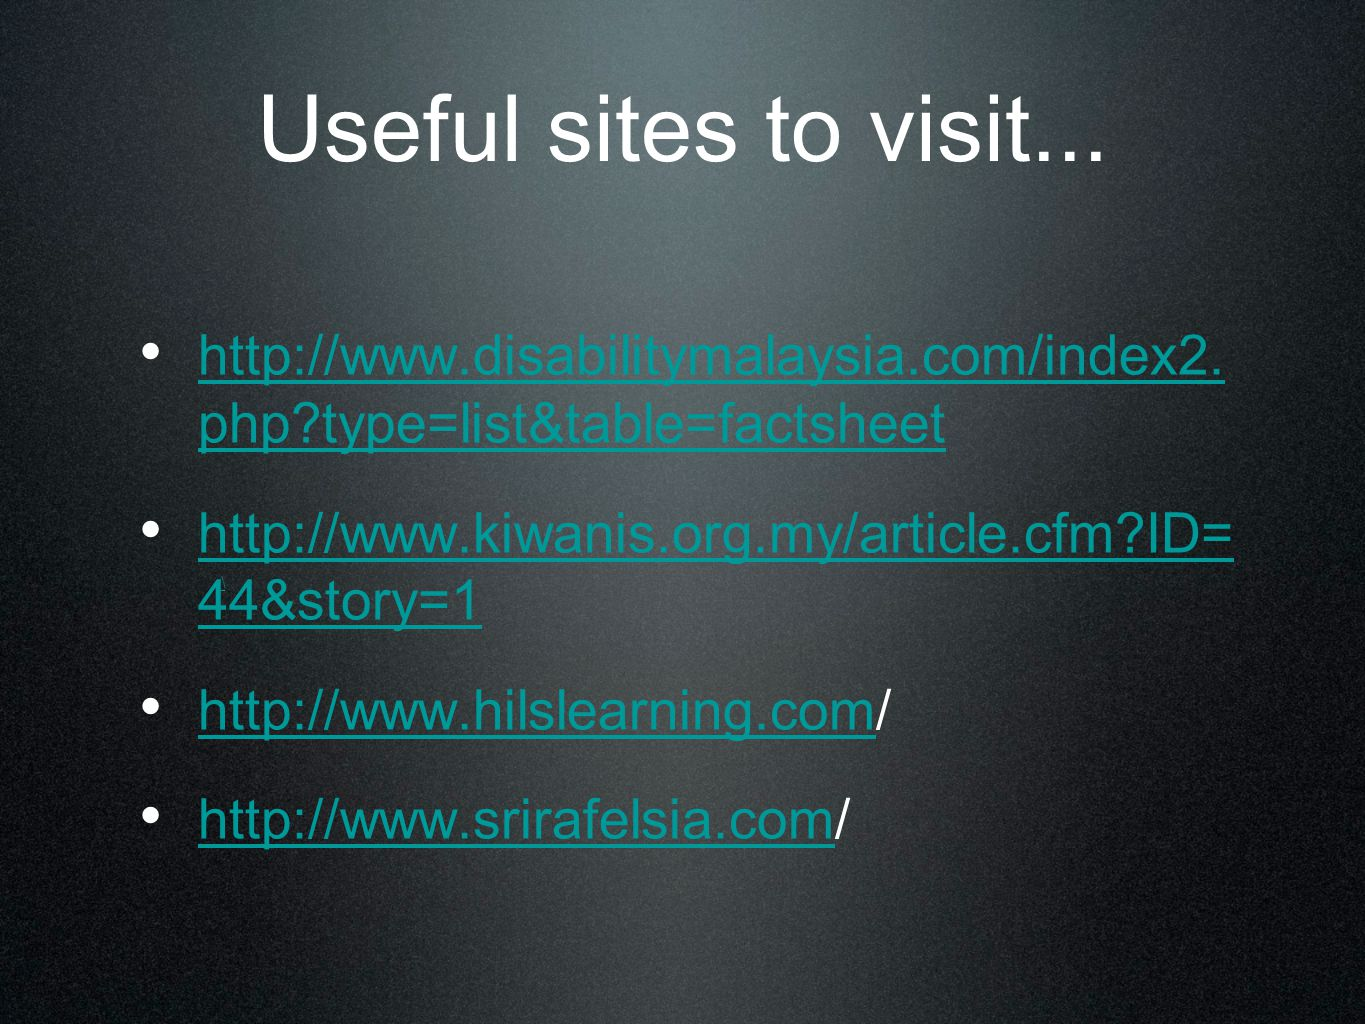 Useful sites to visit... http://www.disabilitymalaysia.com/index2.